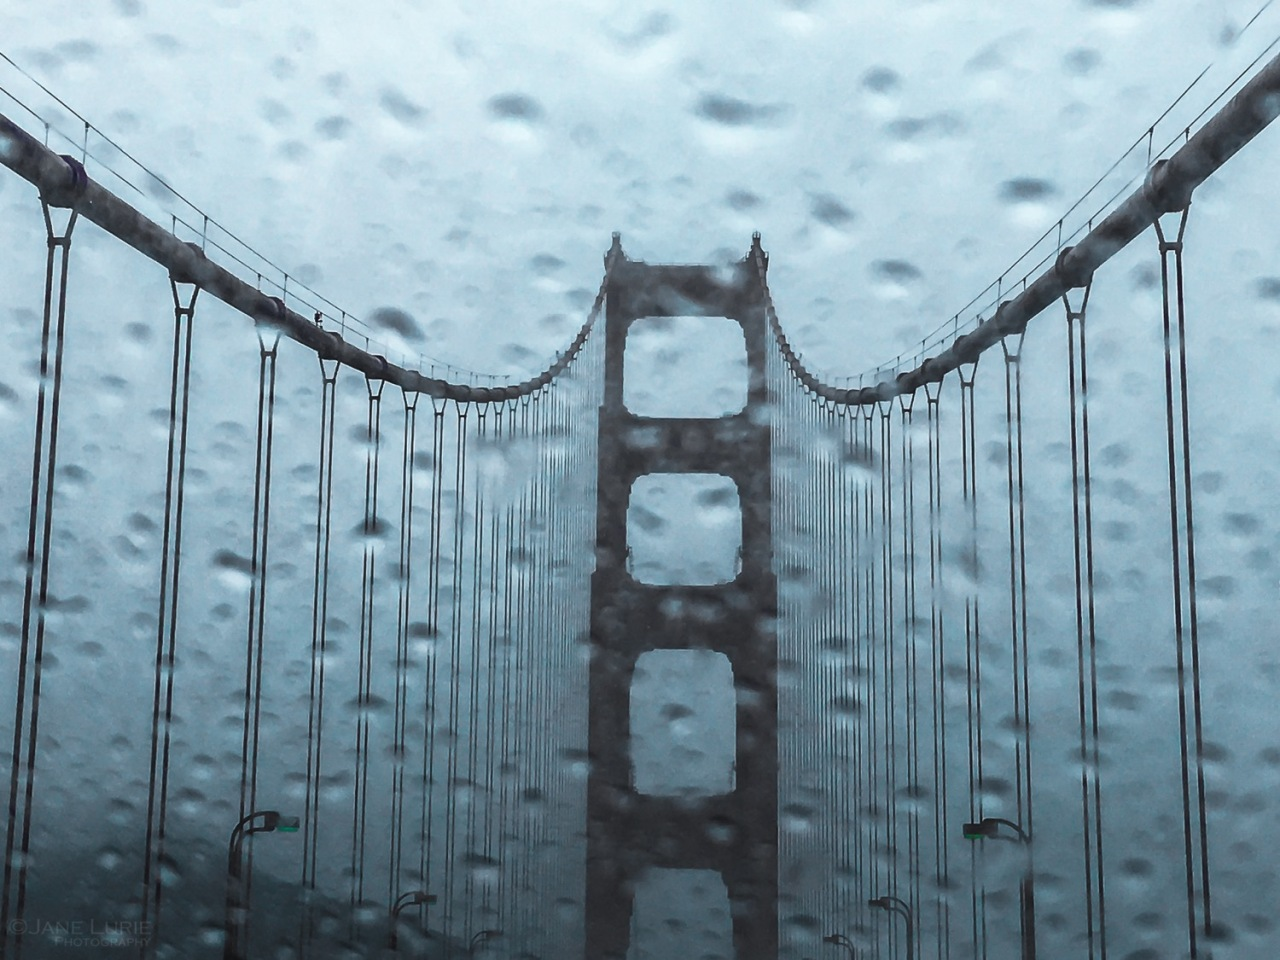 Rainy Impressions, San Francisco